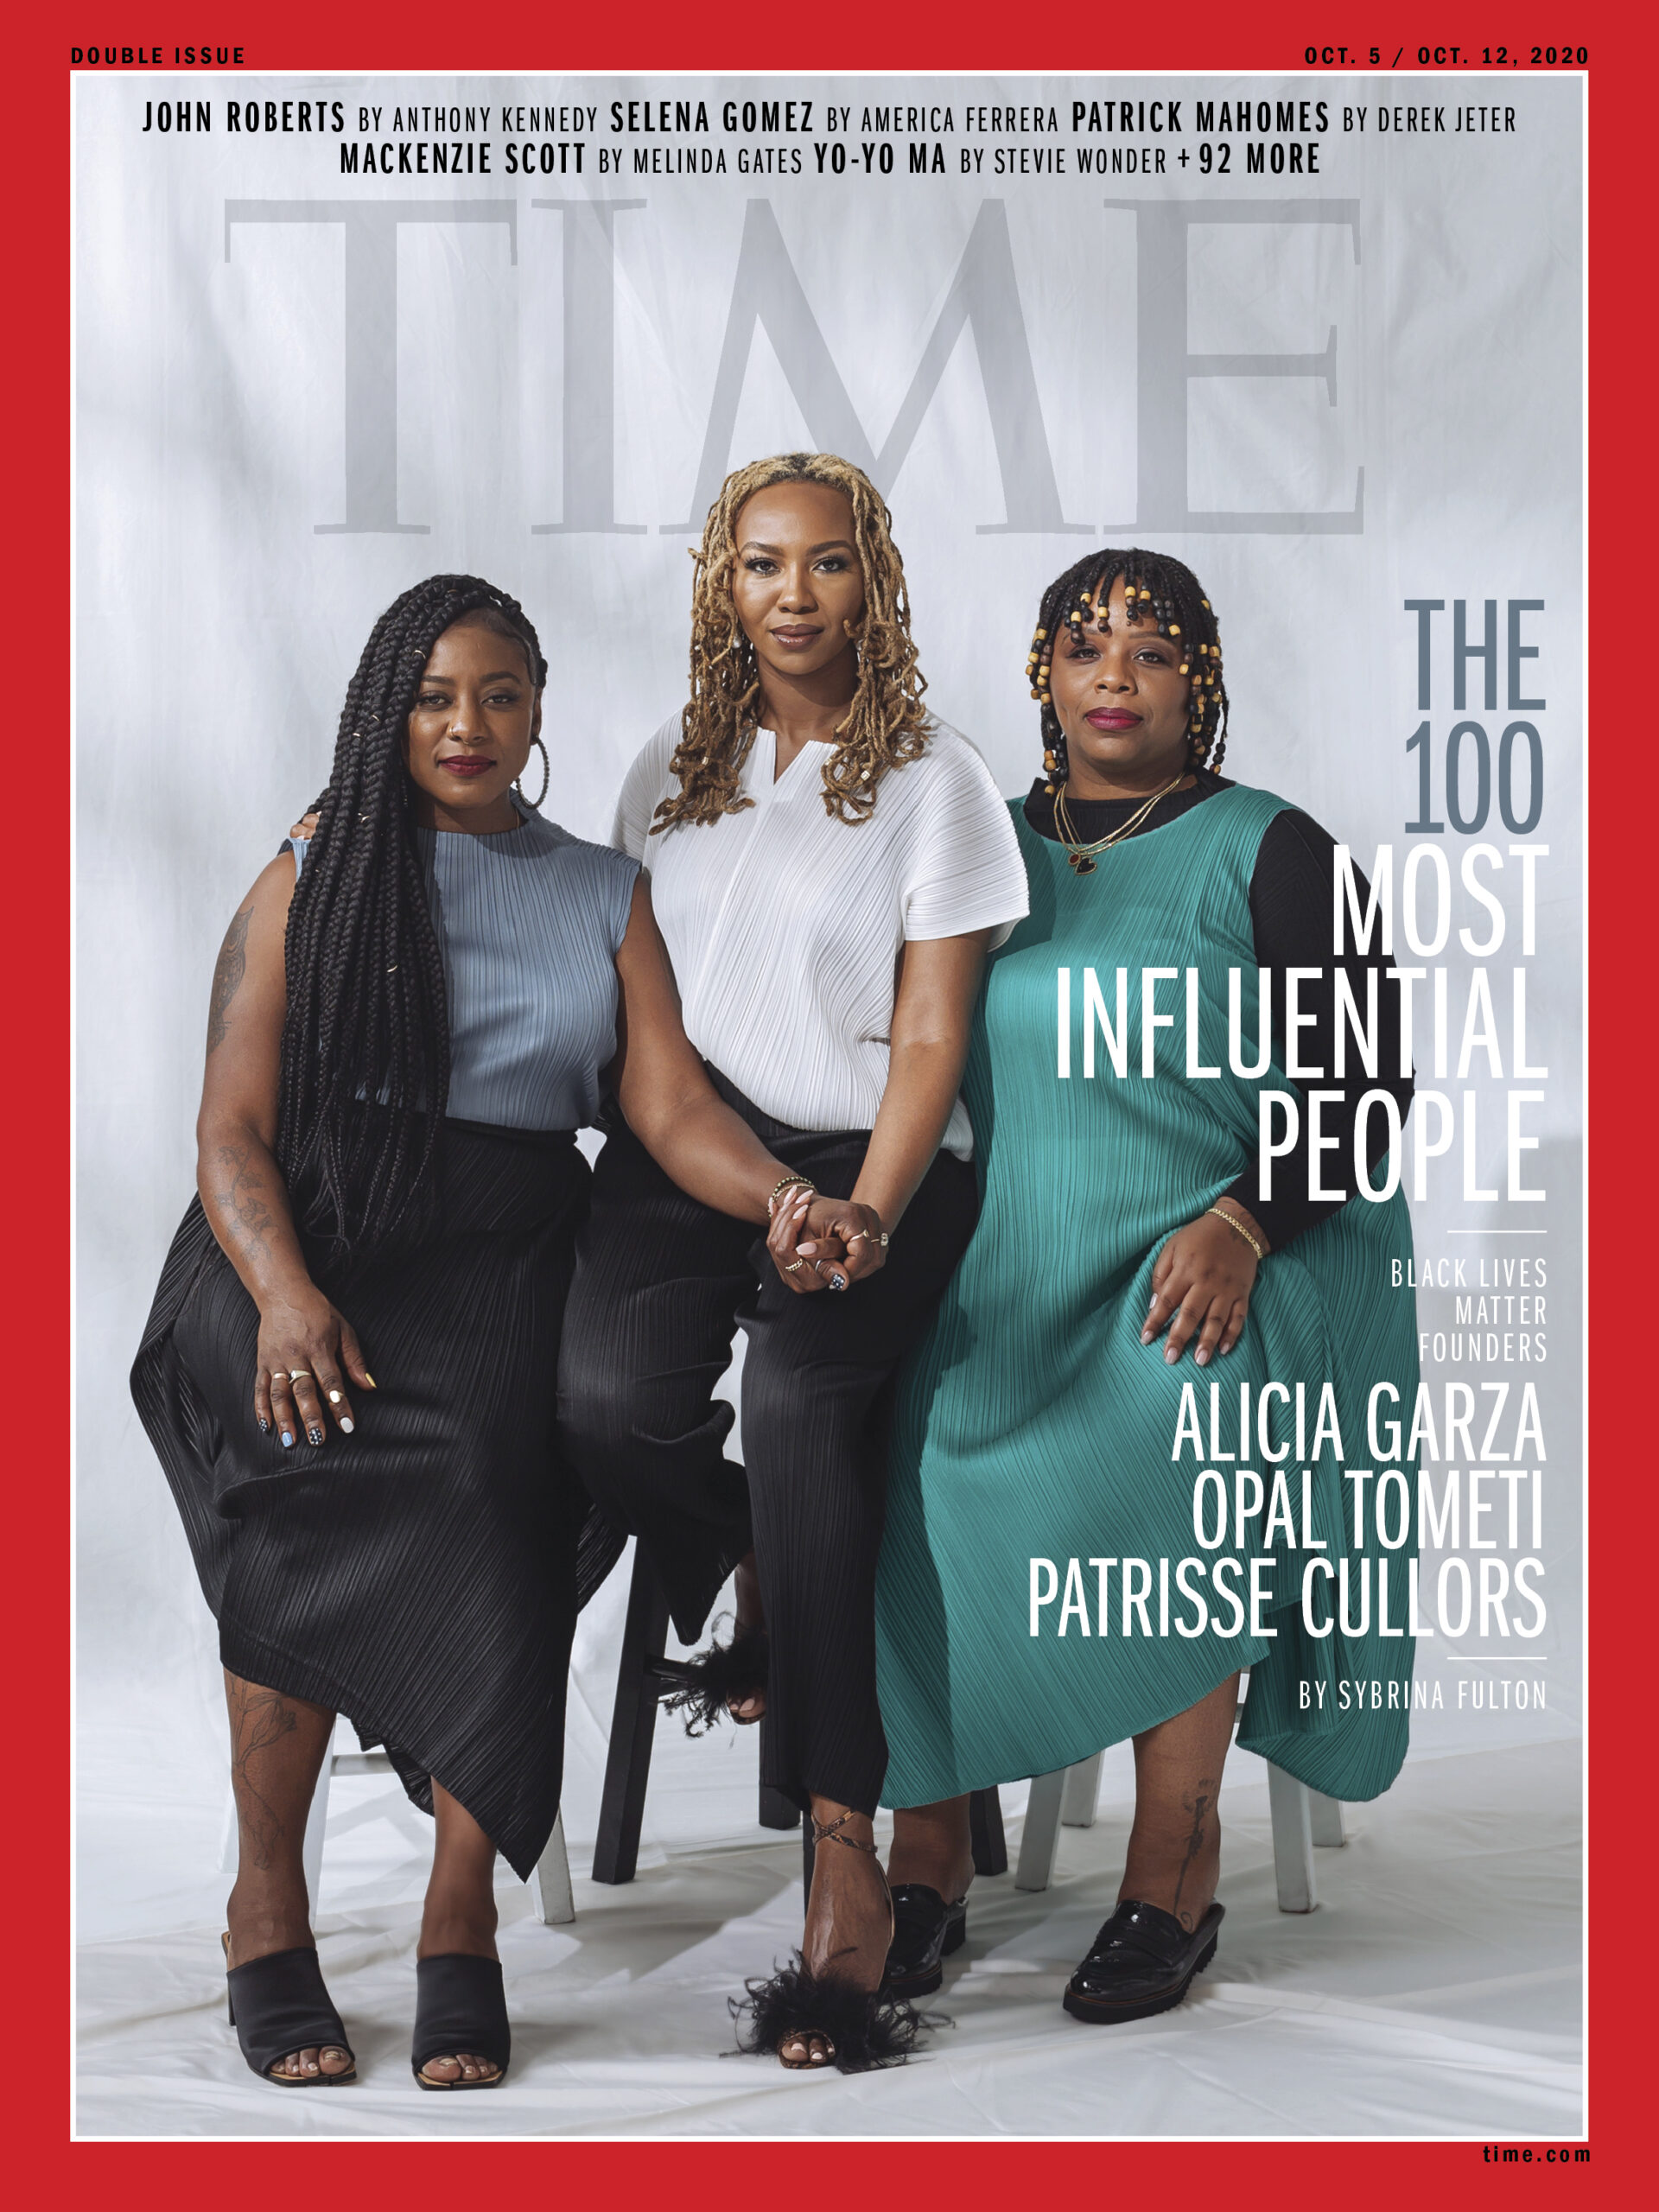 TIME – THE 100 MOST INFLUENTIAL PEOPLE OF 2020 – Black Lives Matter Founders Alicia Garza, Patrisse Cullors and Ayọ Tometi